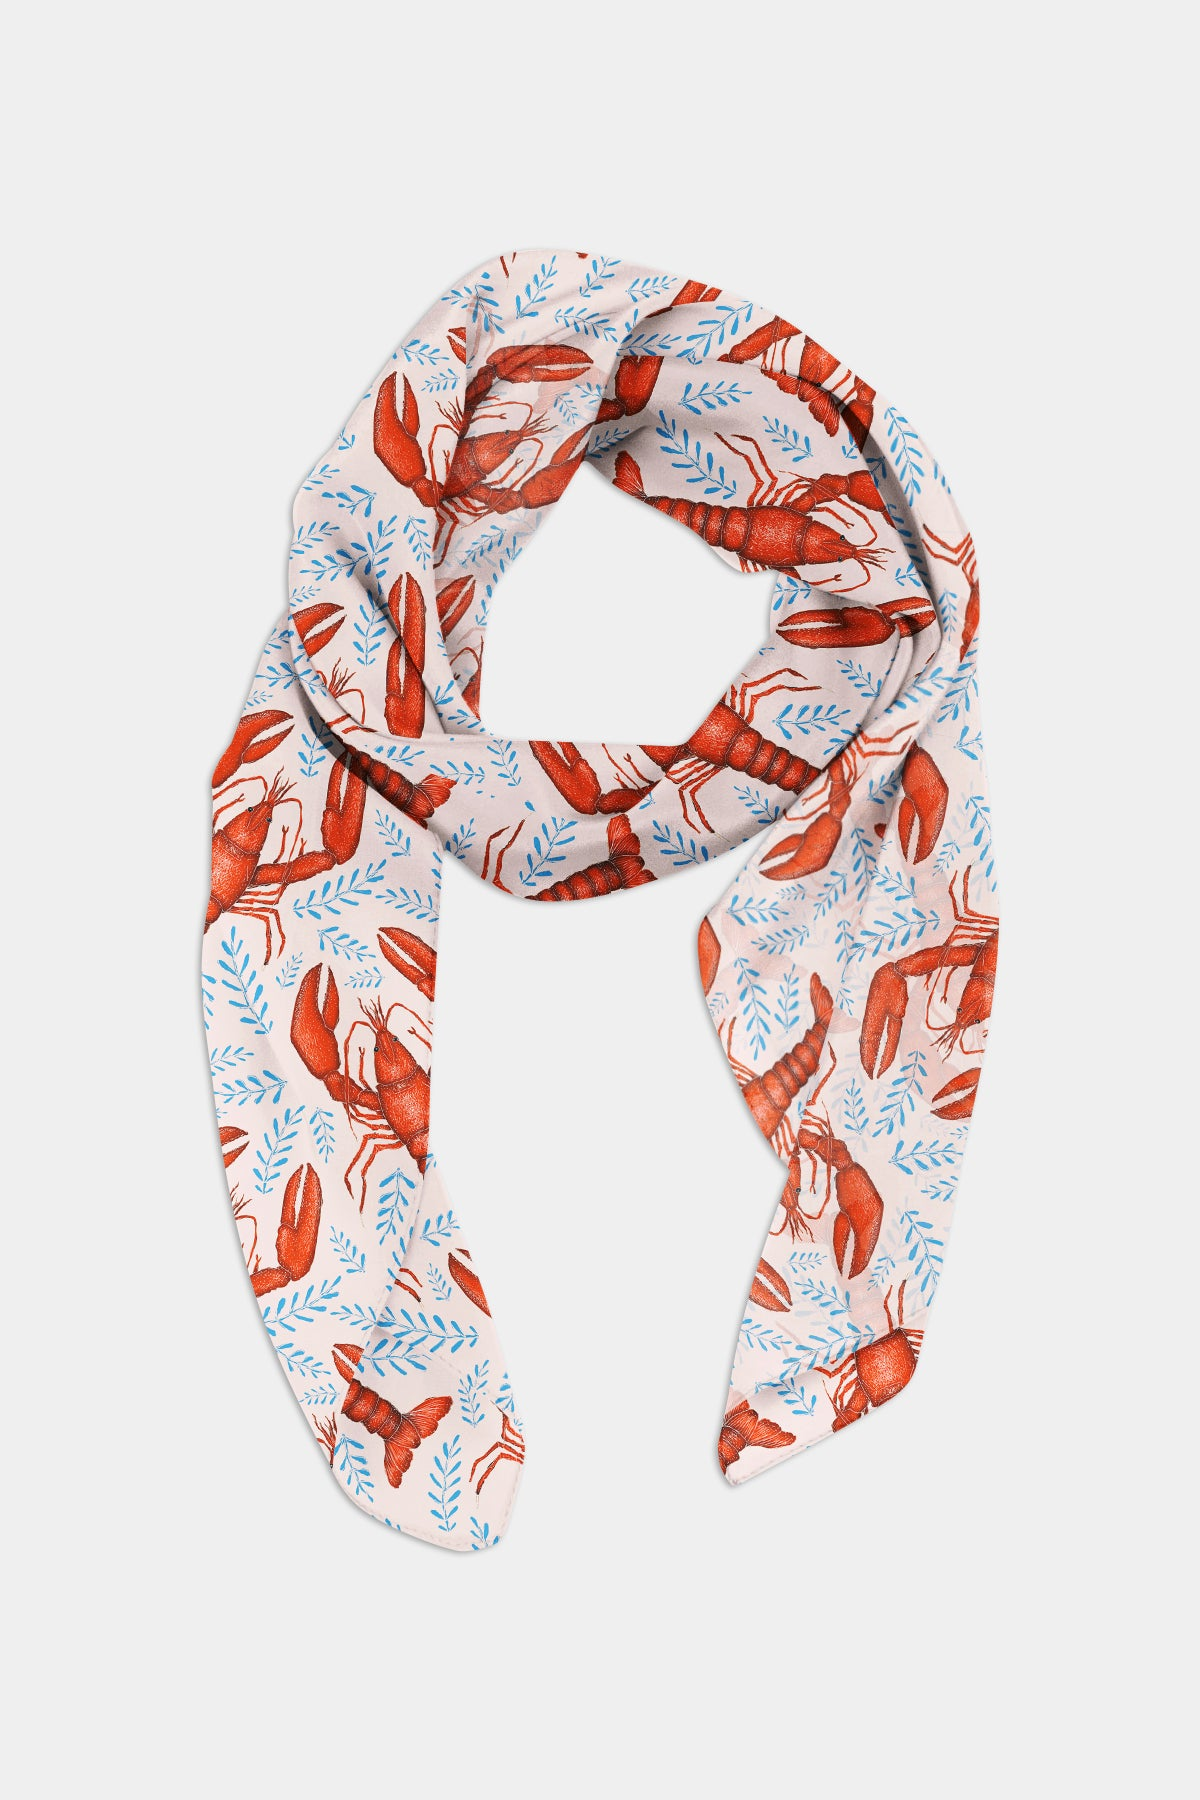 Lobster Pattern in Shell Pink Chiffon Scarf - 100% Silk or Vegan Silk